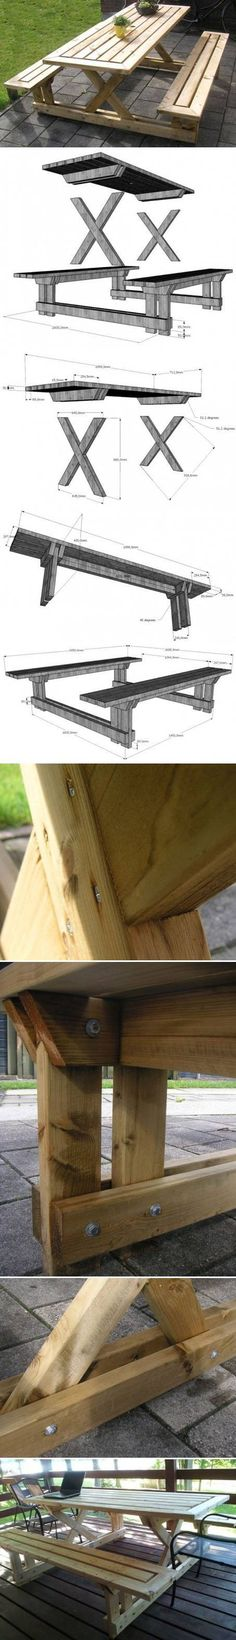 DIY Garden Bench and Table DIY Projects | UsefulDIY.com